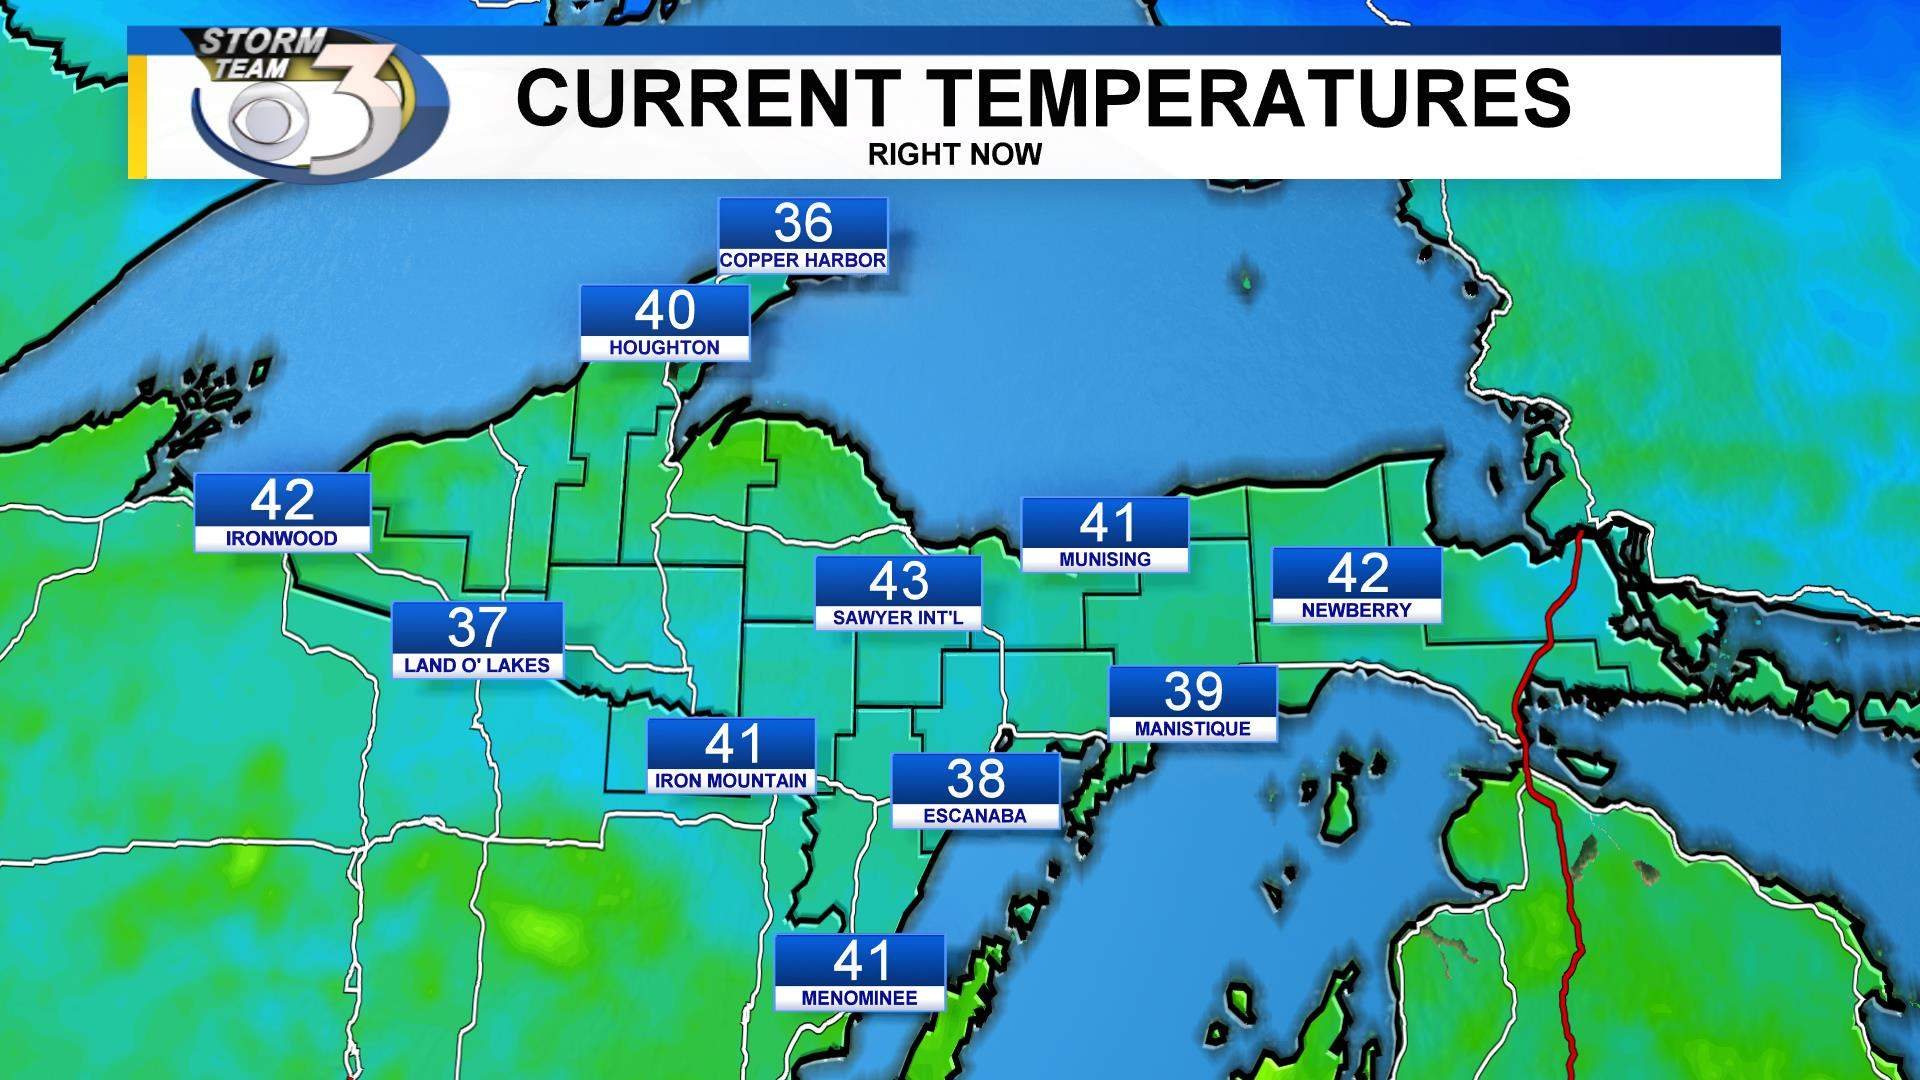 Current Temperatures